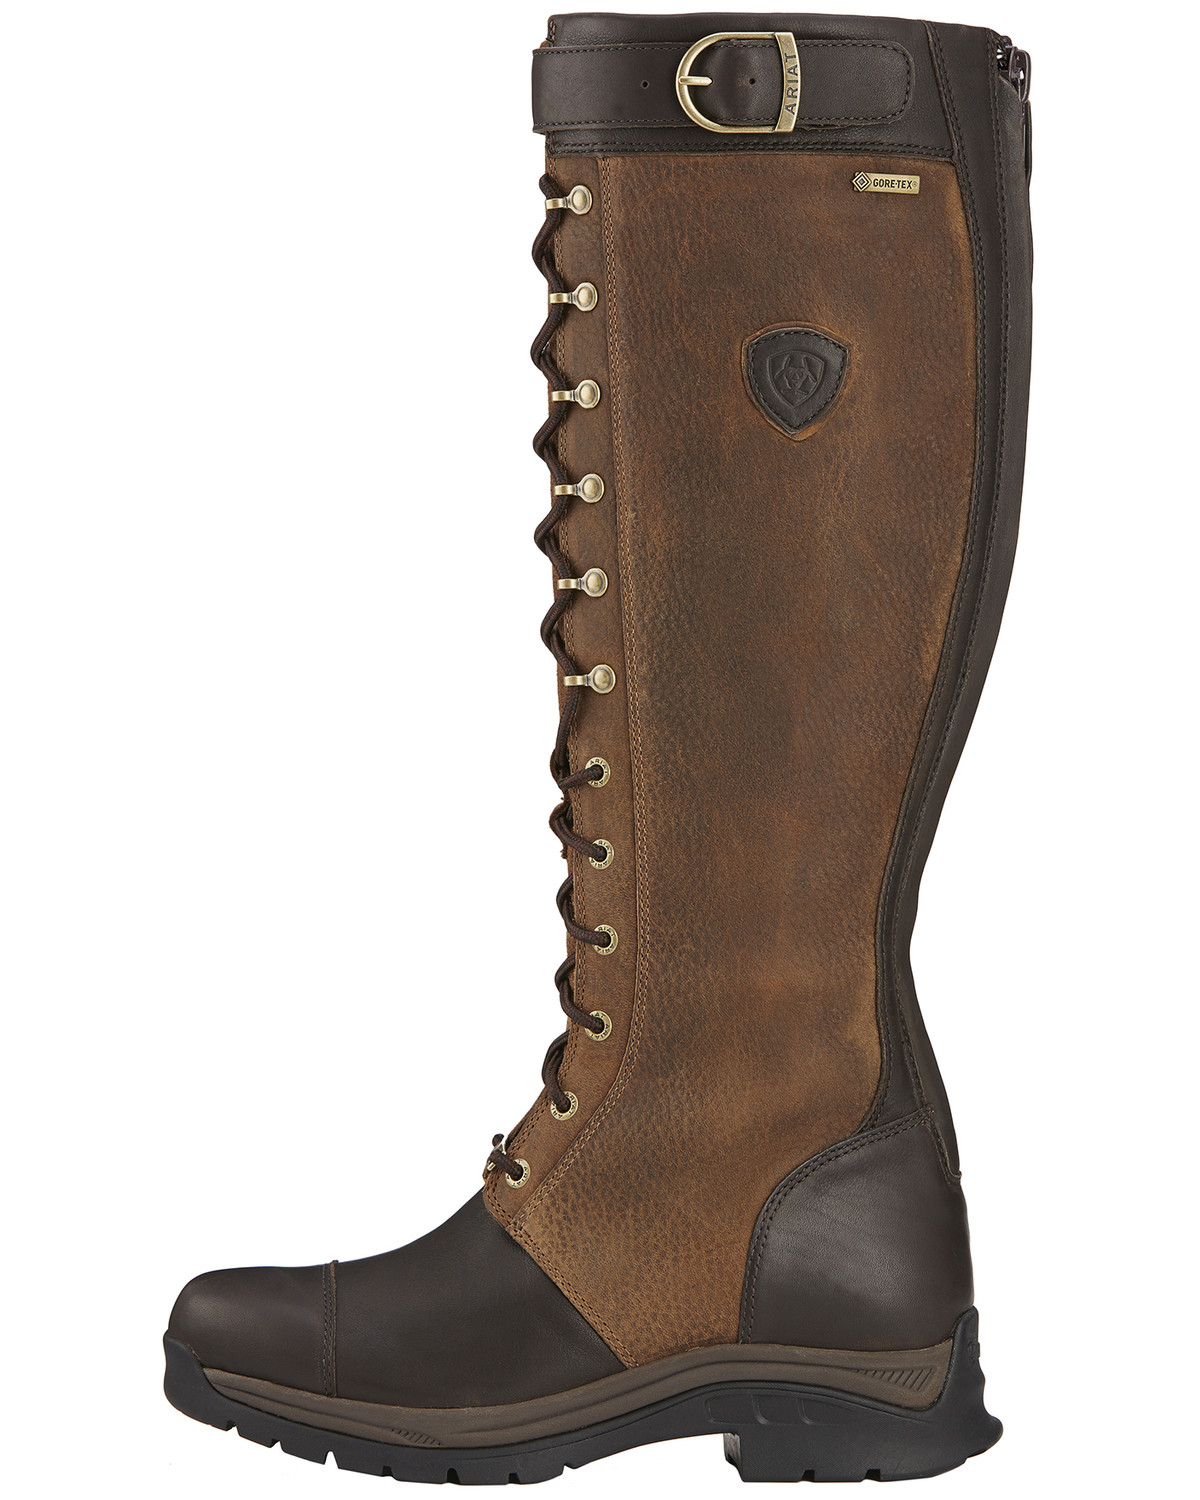 Ariat Women's Berwick GTX Insulated Boots | Sheplers